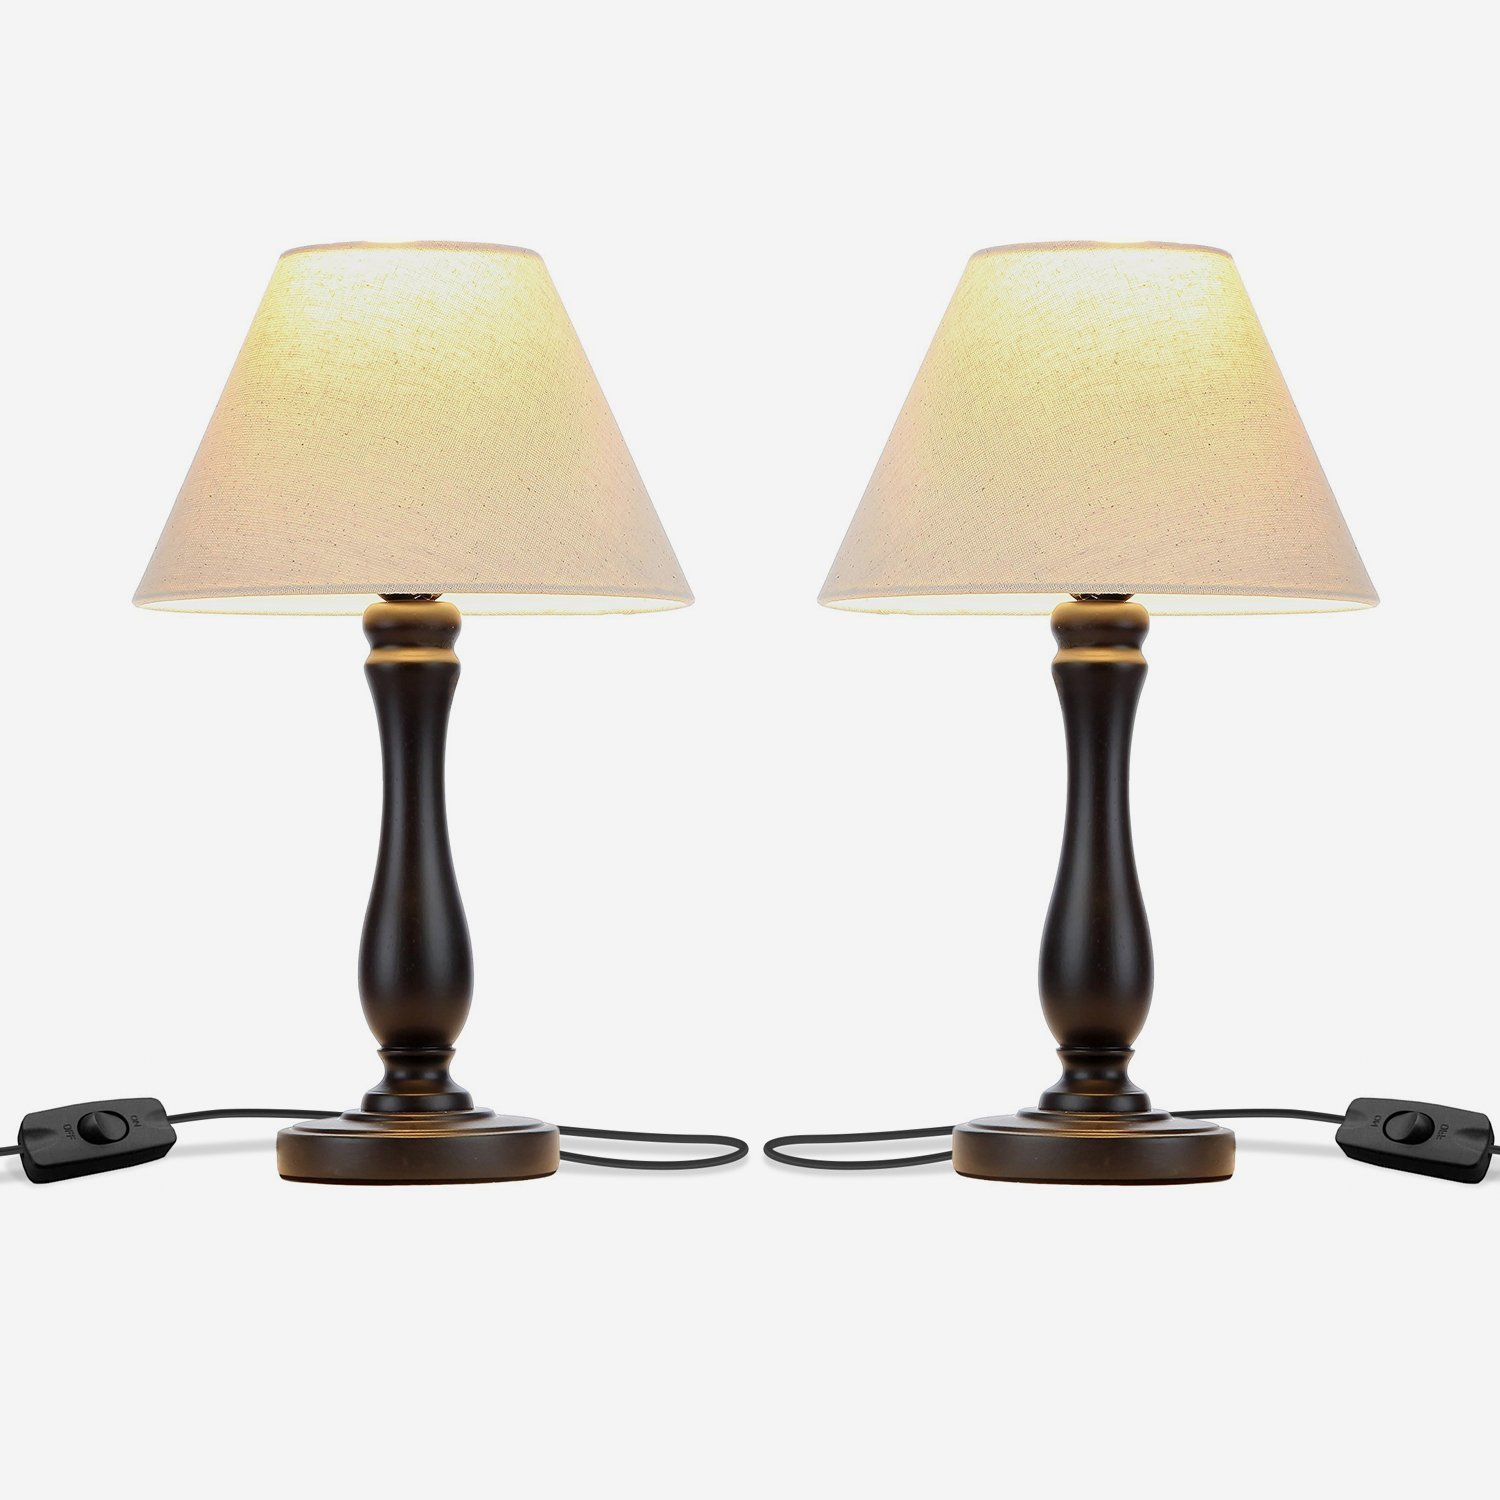 Noah LED Side Bedside Table & Desk Lamp Twin Pack: Traditional Black Wood Base